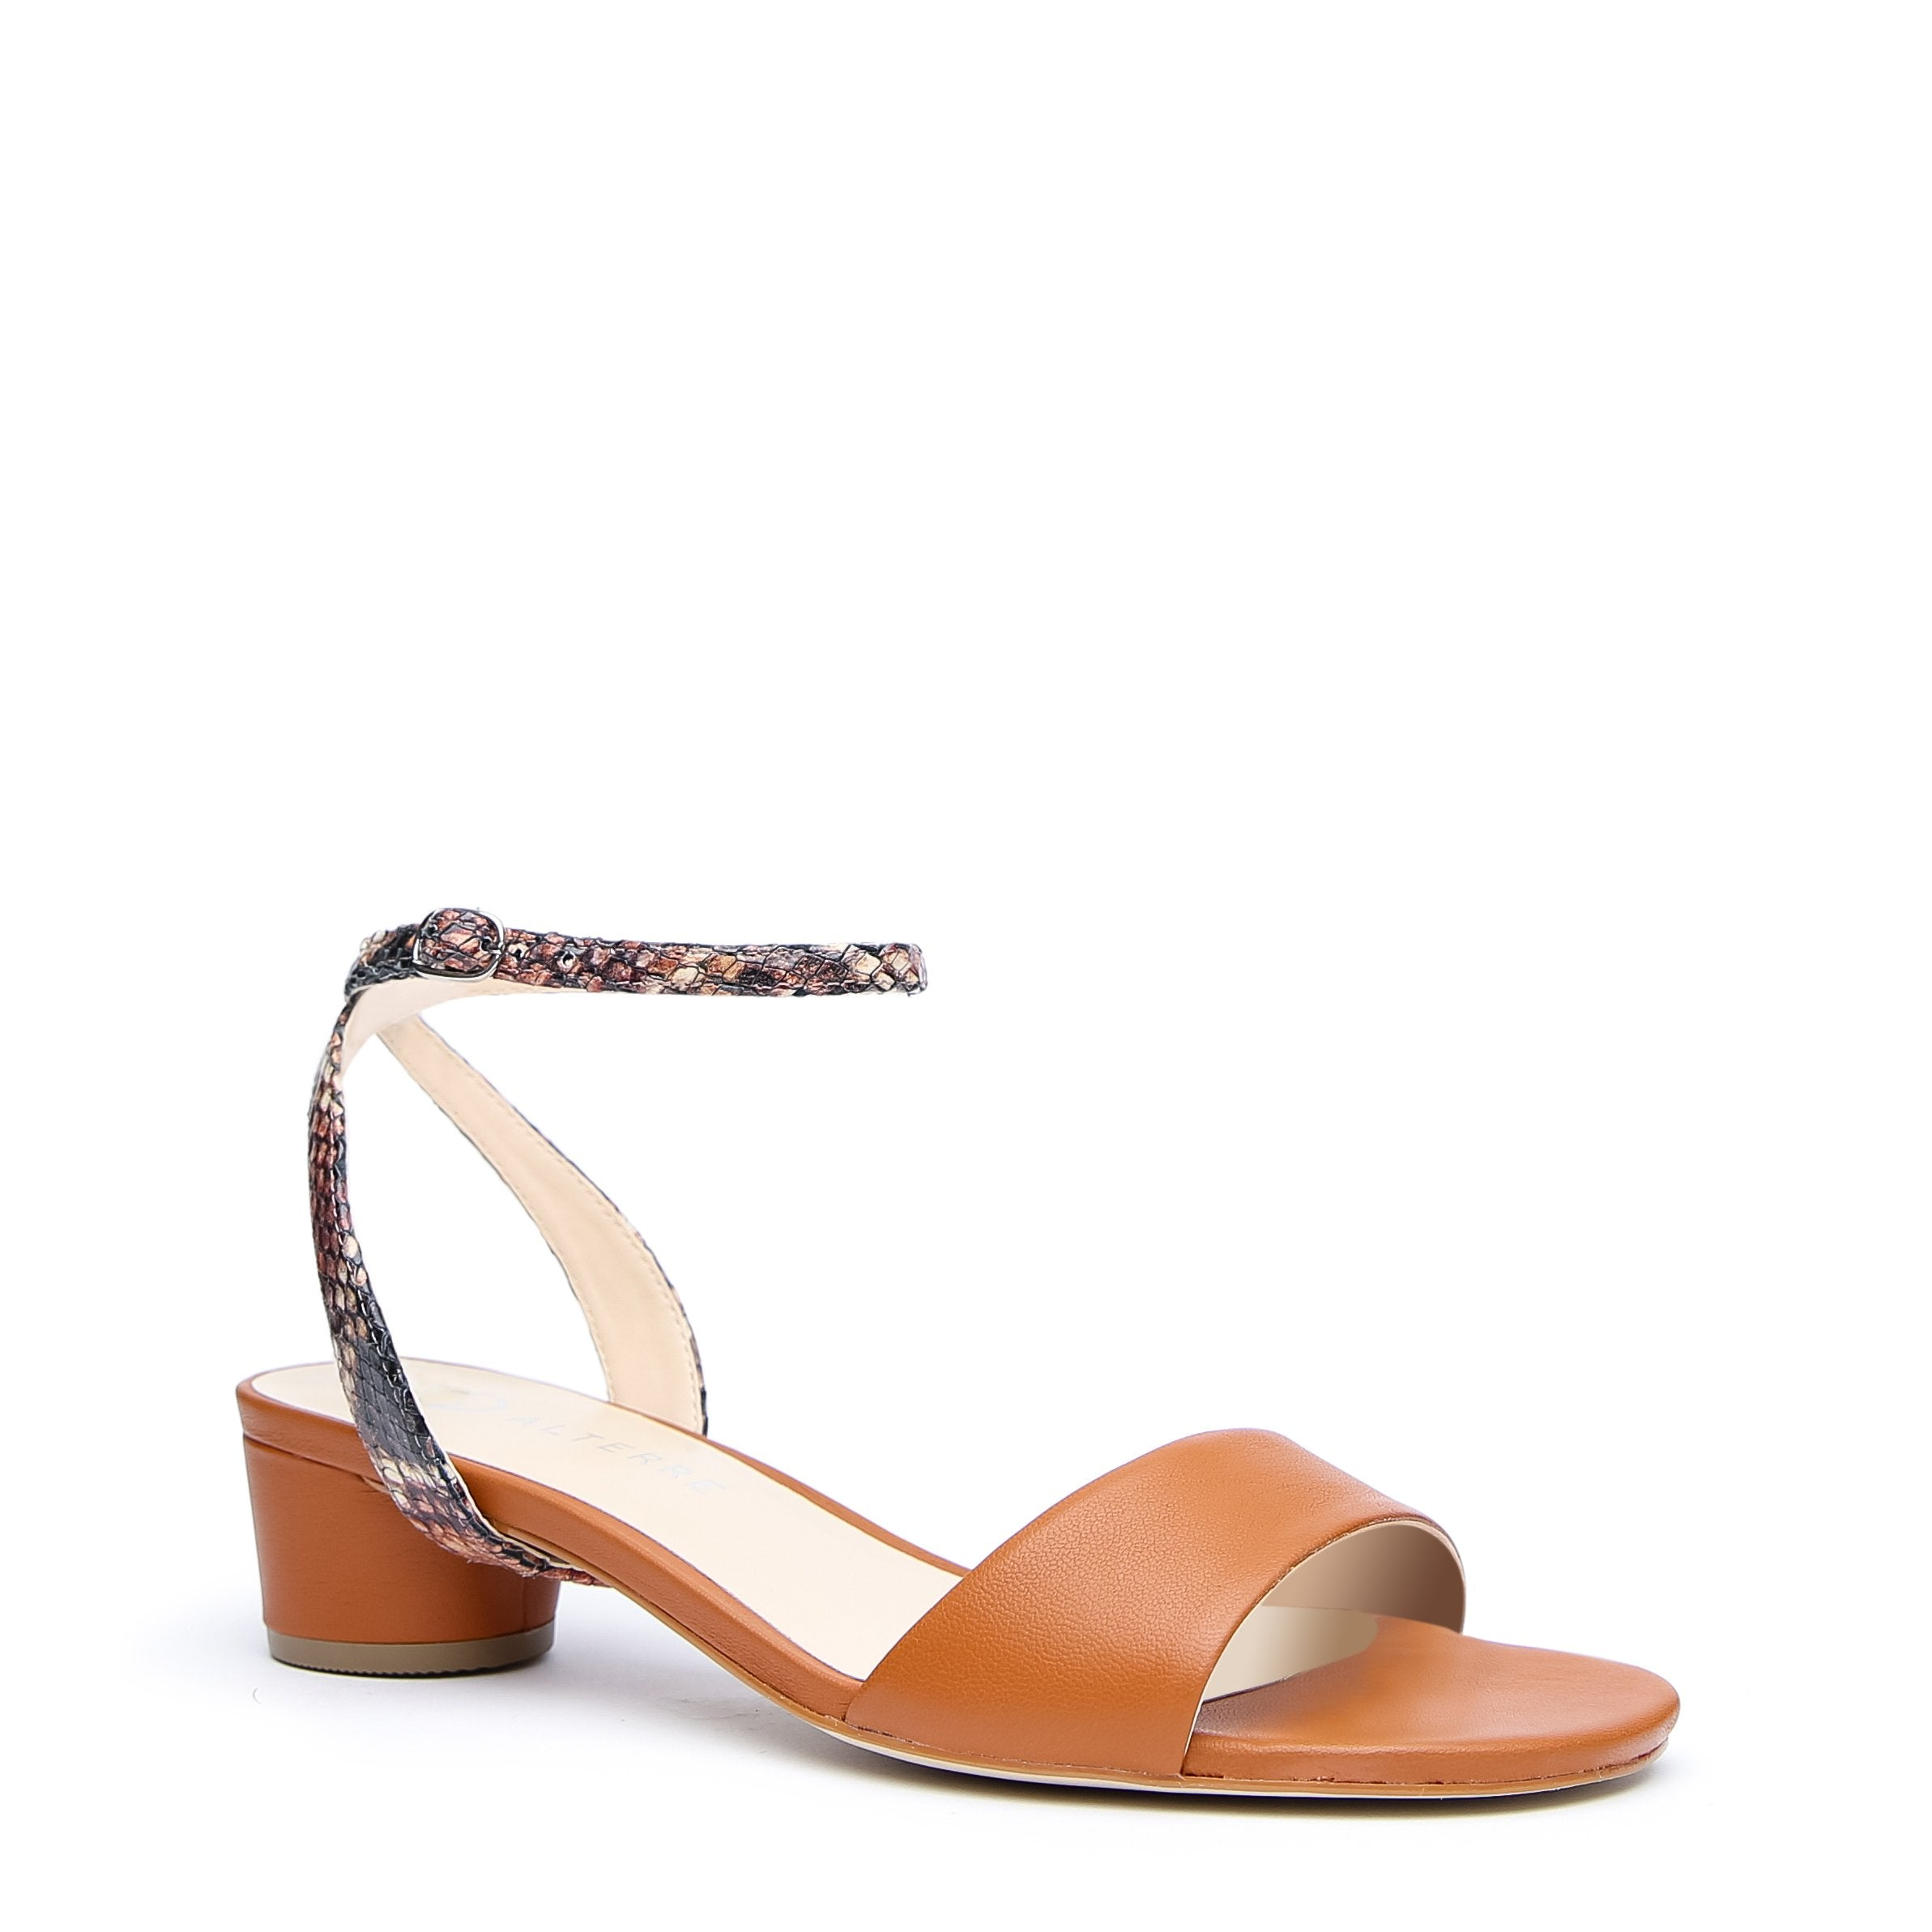 Brown Customizable Sandals + Rosy Boa Marilyn Strap | Alterre Make A Sandal - Sustainable Footwear & Ethical Shoes